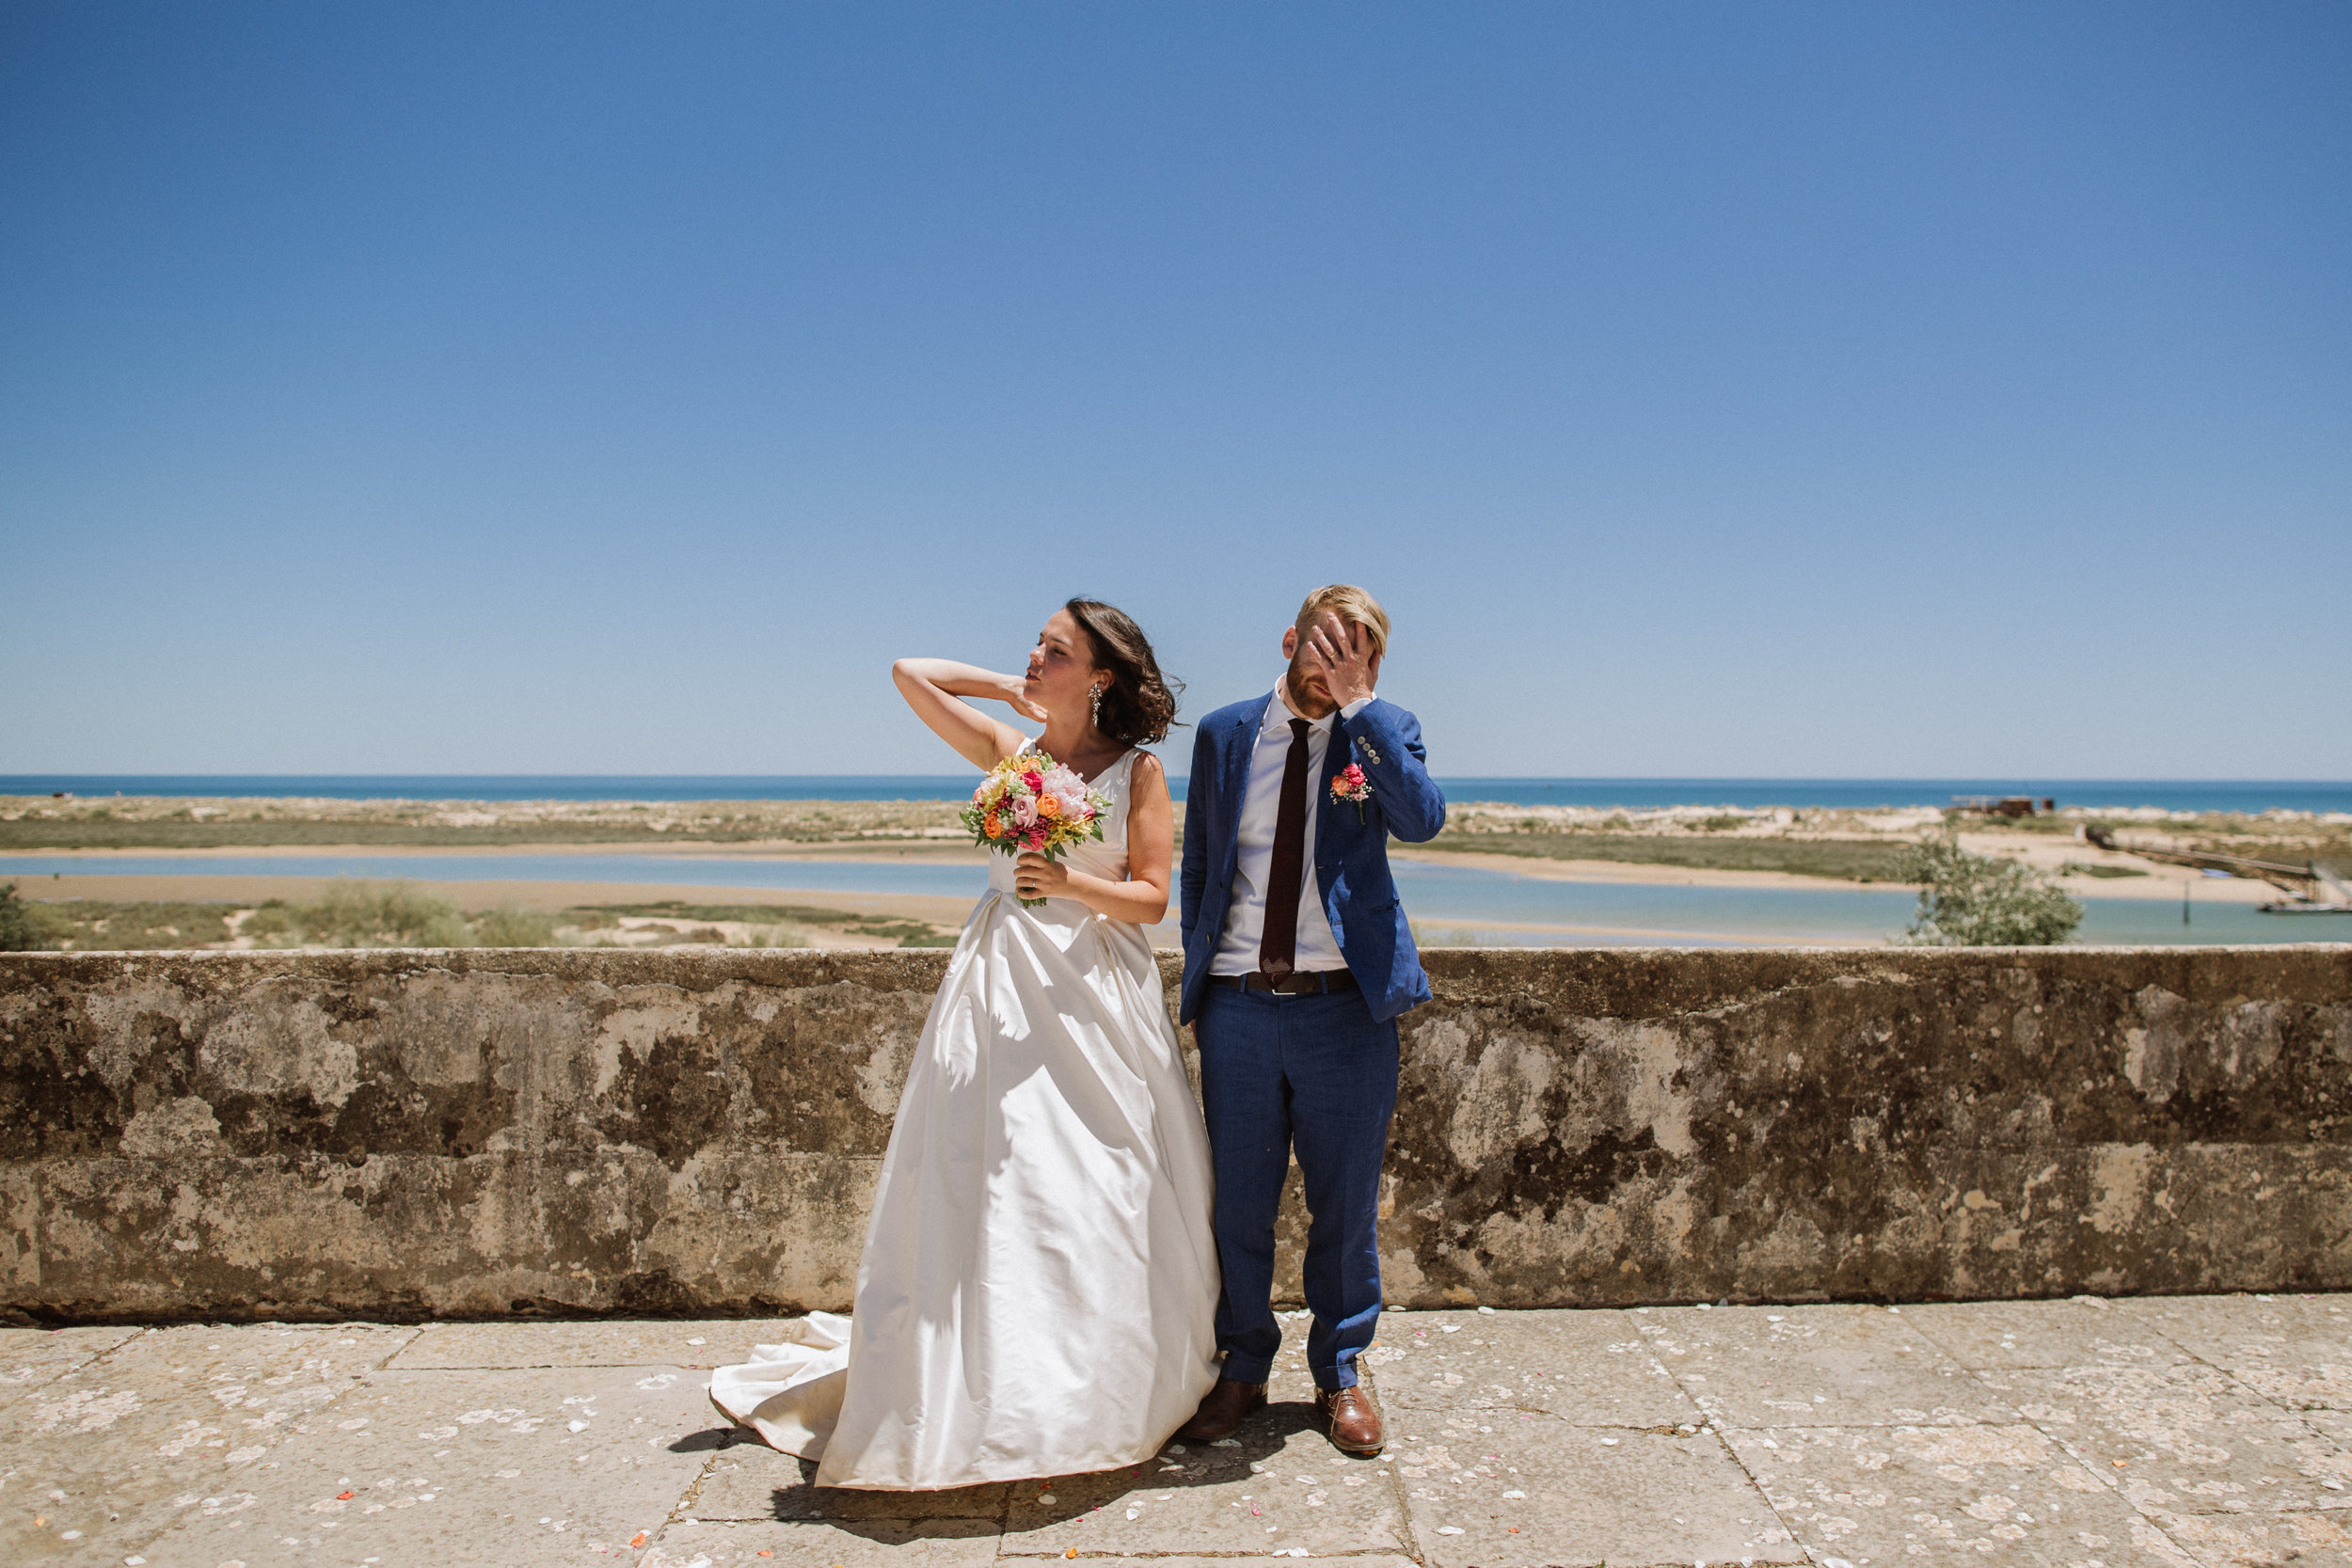 wedding at Forte São João da Barra in Cabanas de Tavira, Algarve, Portugal, alternative photographer